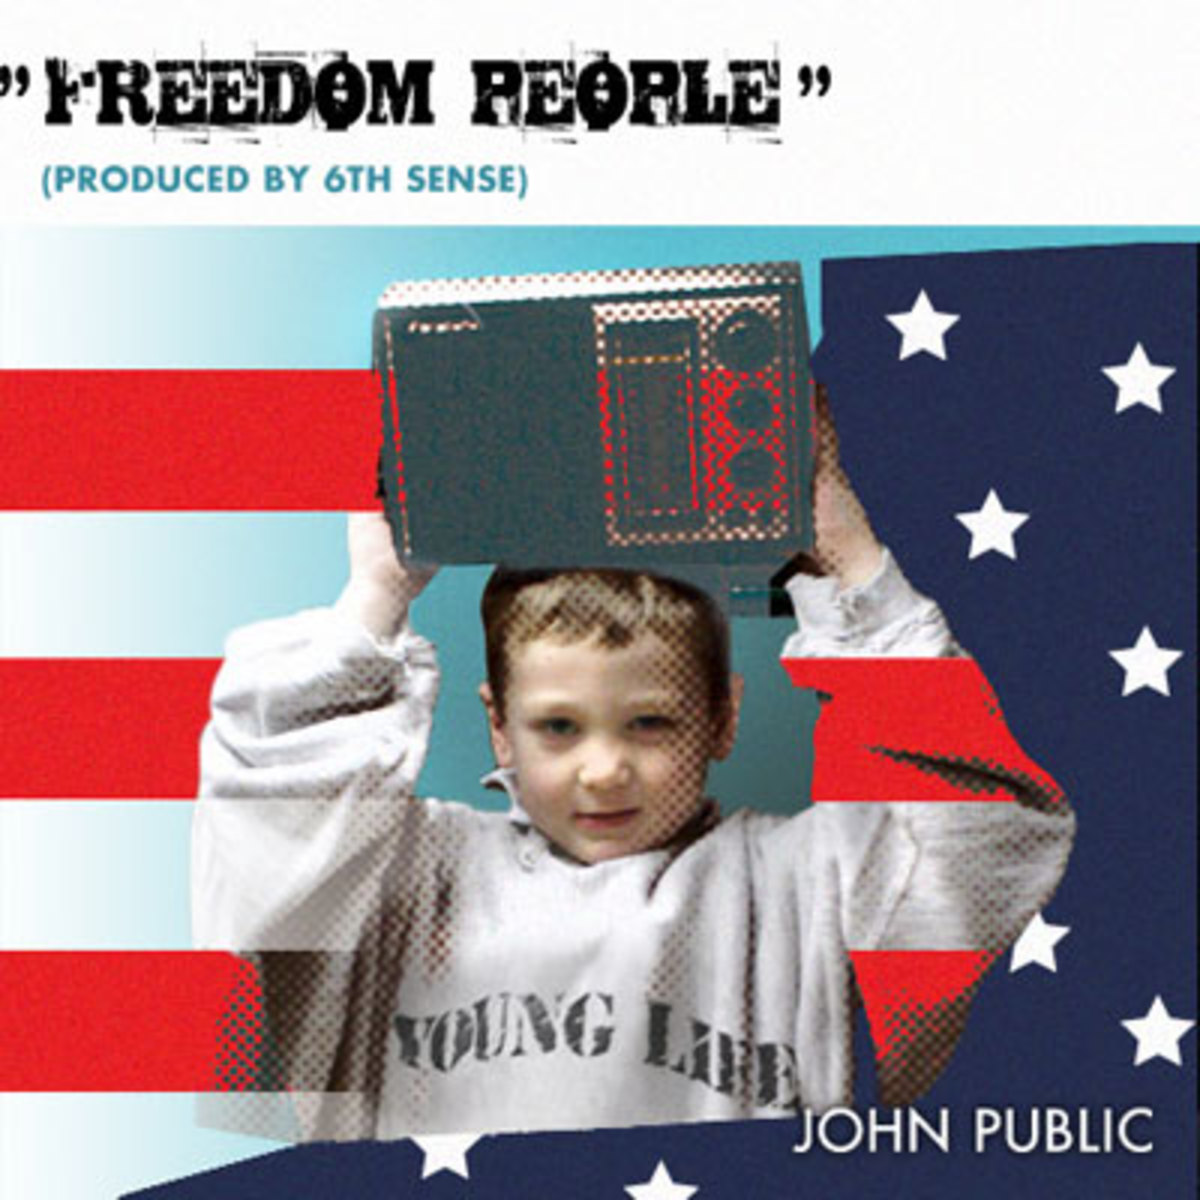 johnpublic-freedompeople.jpg